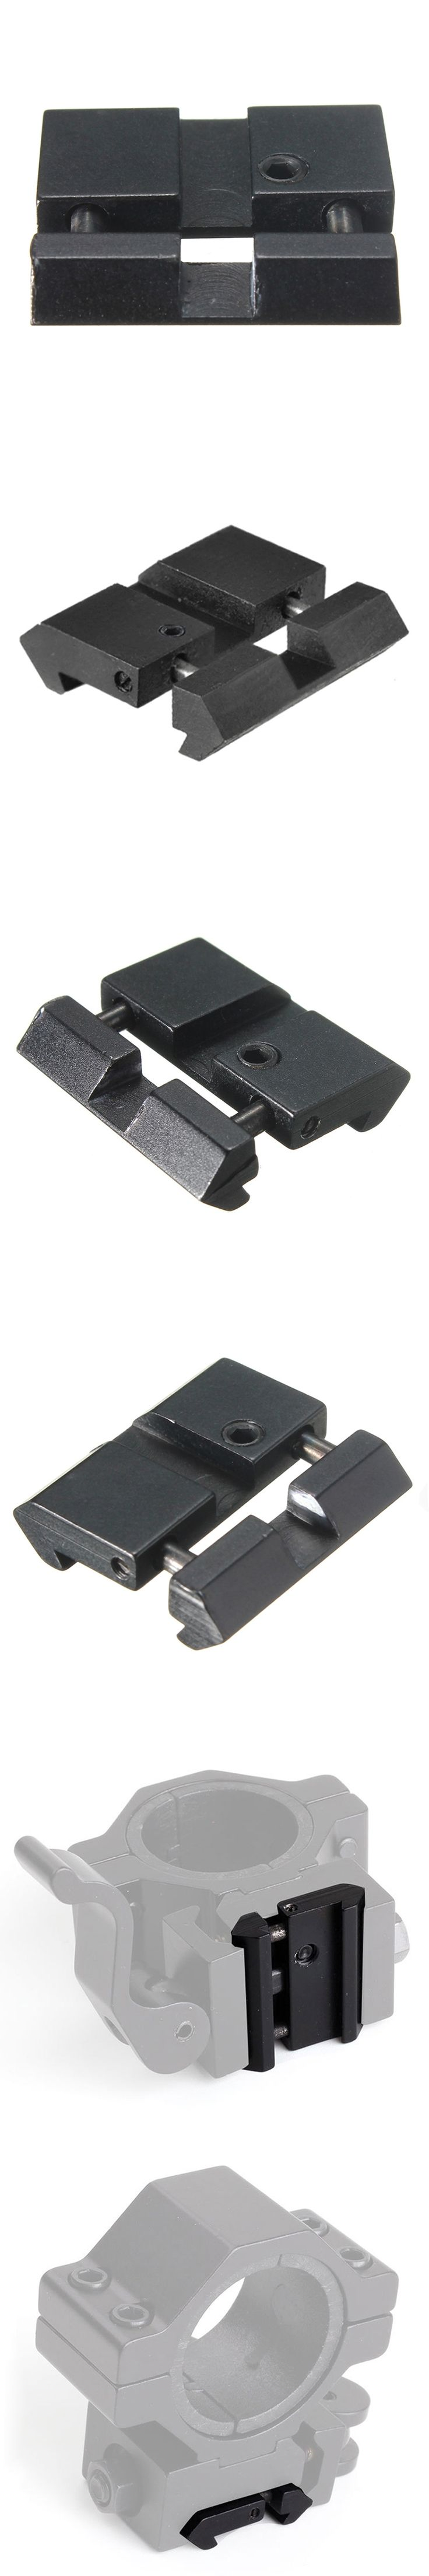 Hunting Dovetail to Weaver Picatinny Adapter Snap In Rail Adapter 11mm to 22mm Tactical Accessories Army Gear